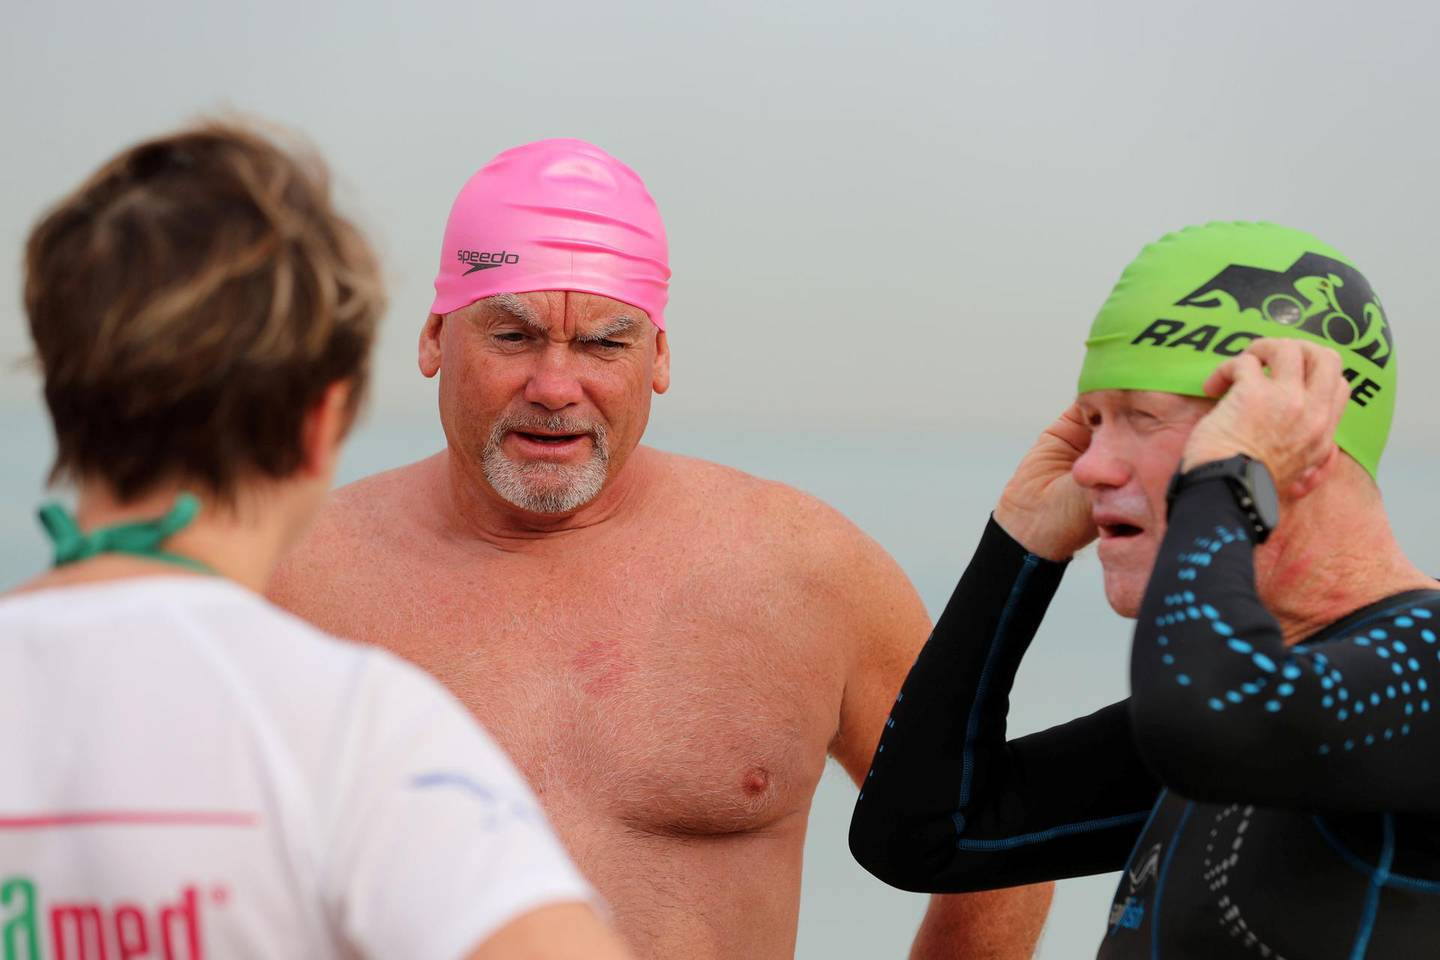 Dubai, United Arab Emirates - Reporter: Nick Webster: Tom Lynch and Ralph Joyce (R). The first 24km swim round the world islands will take place in November. A team of swimmers are doing a trial 5 km event to Antarctica on April 3, setting off from Dubai Offshore Sailing Club. Saturday, March 14th, 2020. Jumeirah, Dubai. Chris Whiteoak / The National